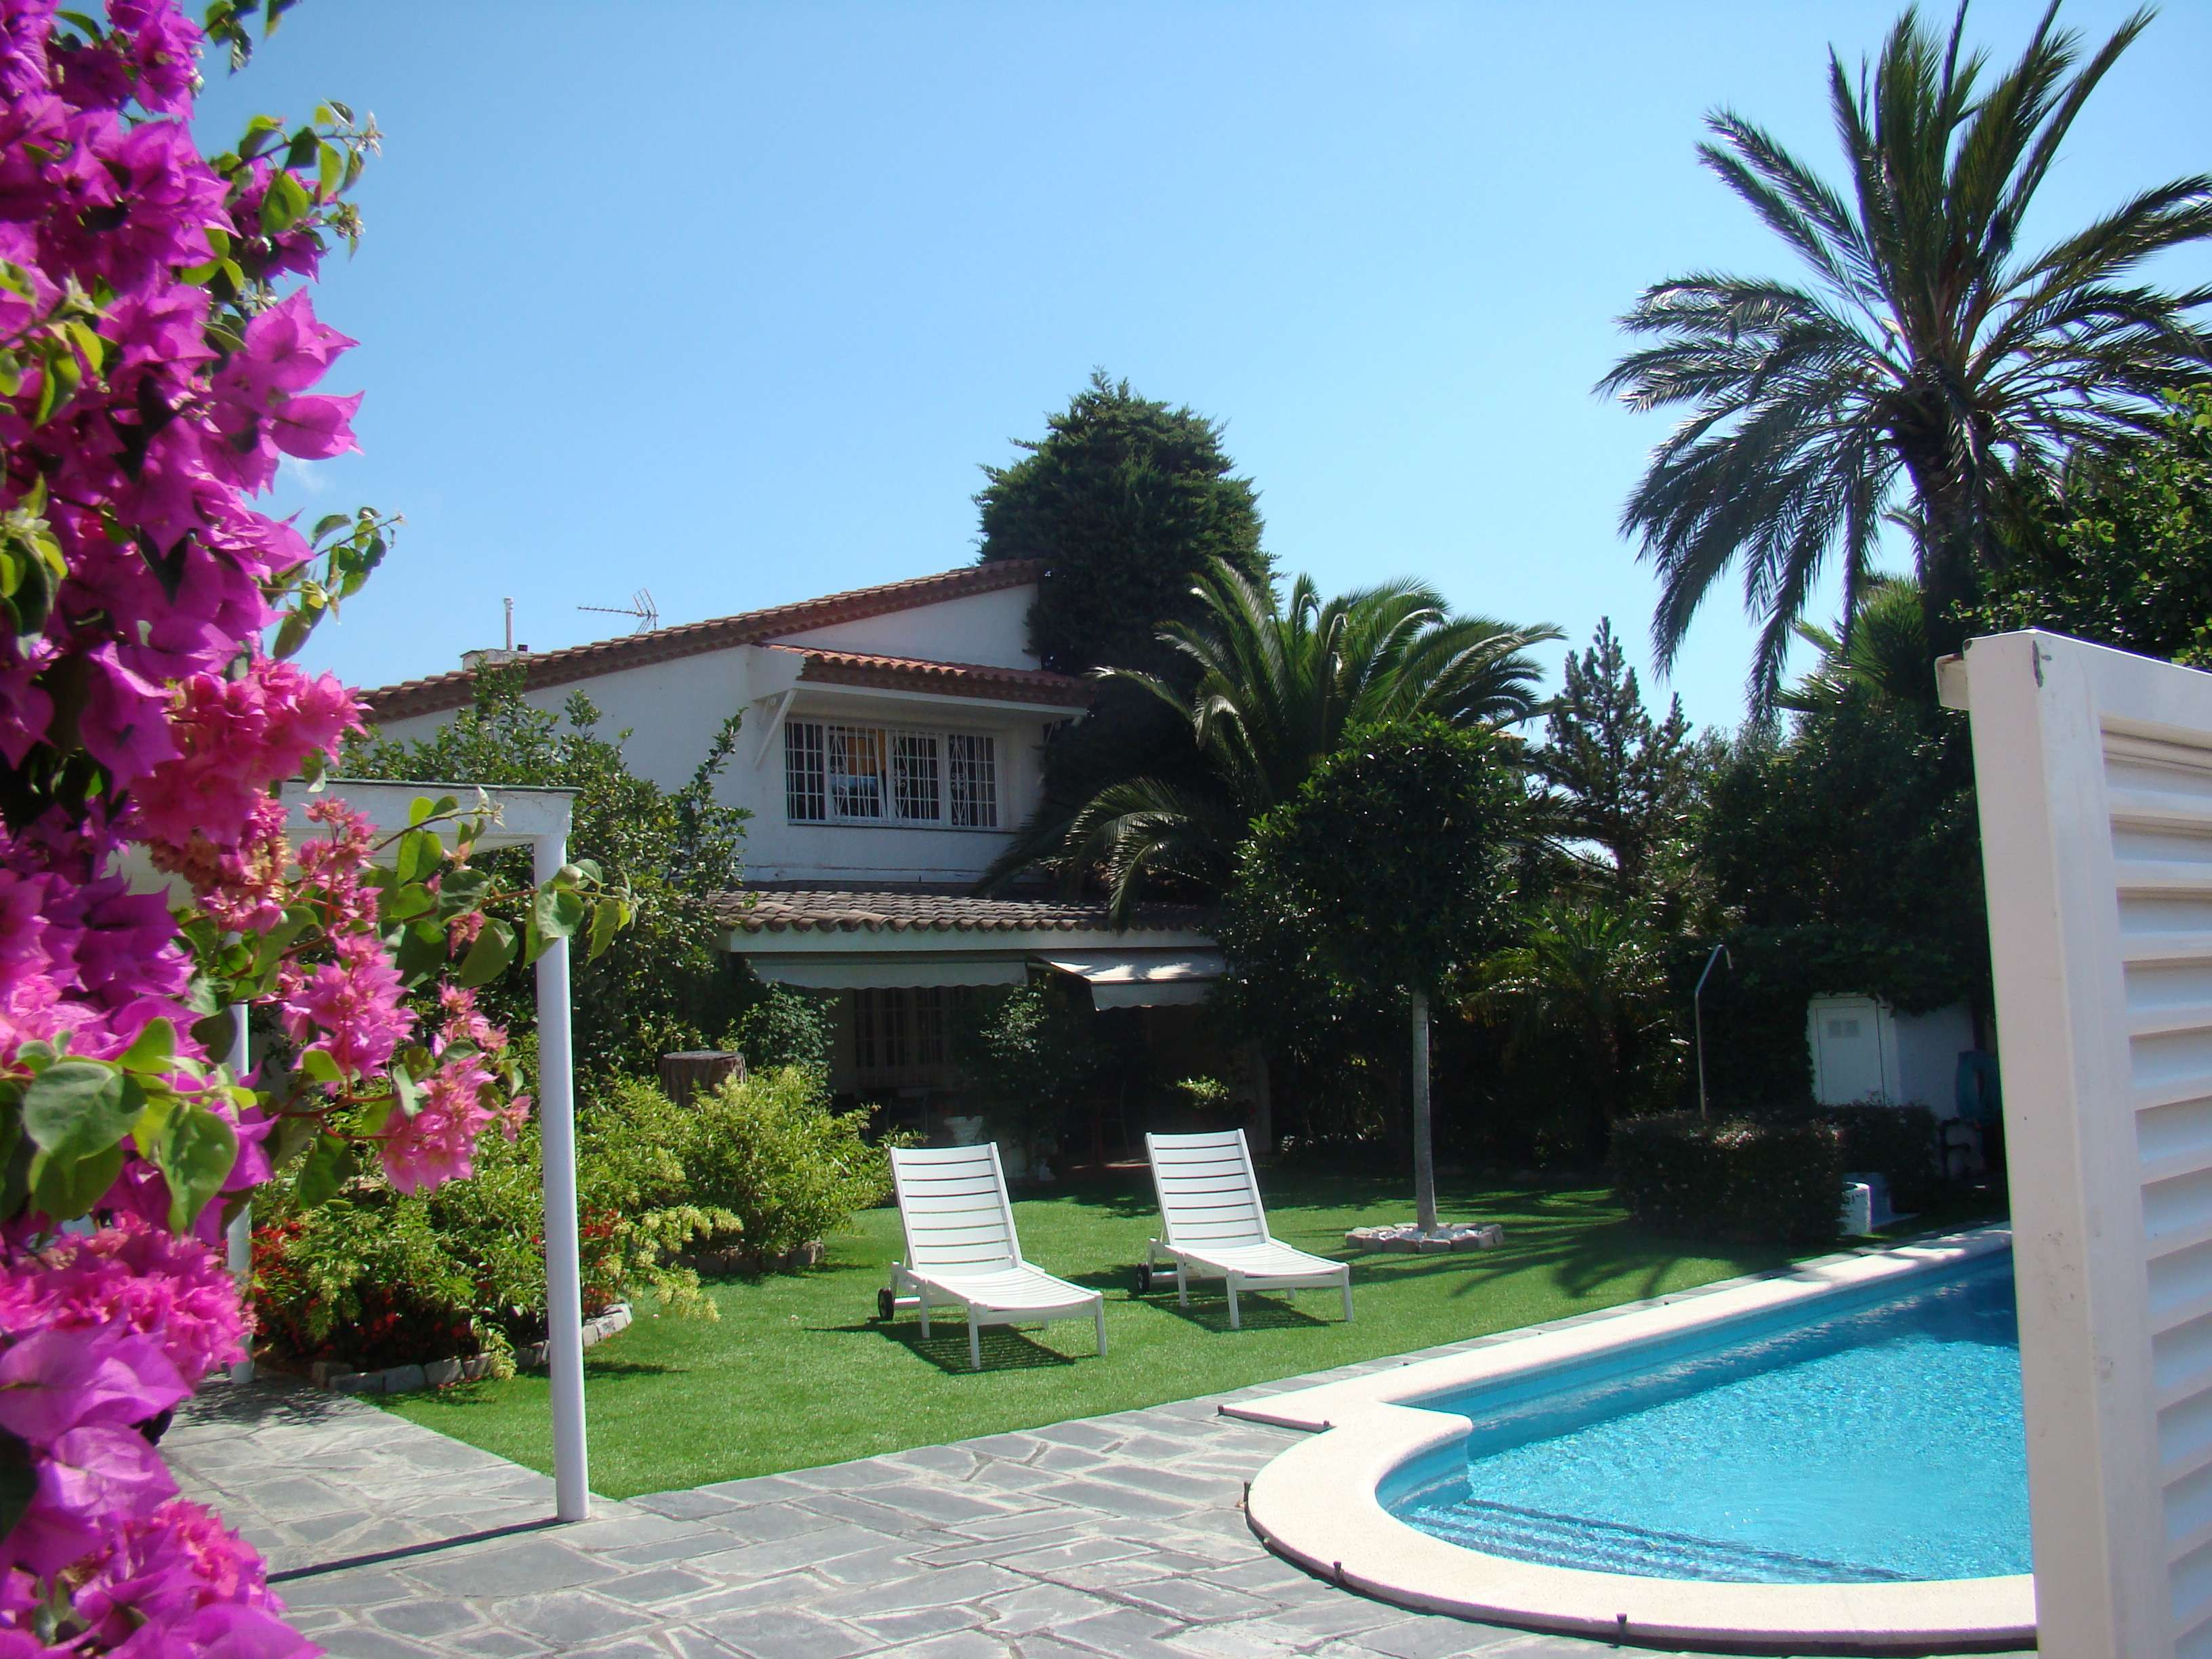 Cozy house with a swimming pool in Vilafortuny,  Costa Dorada